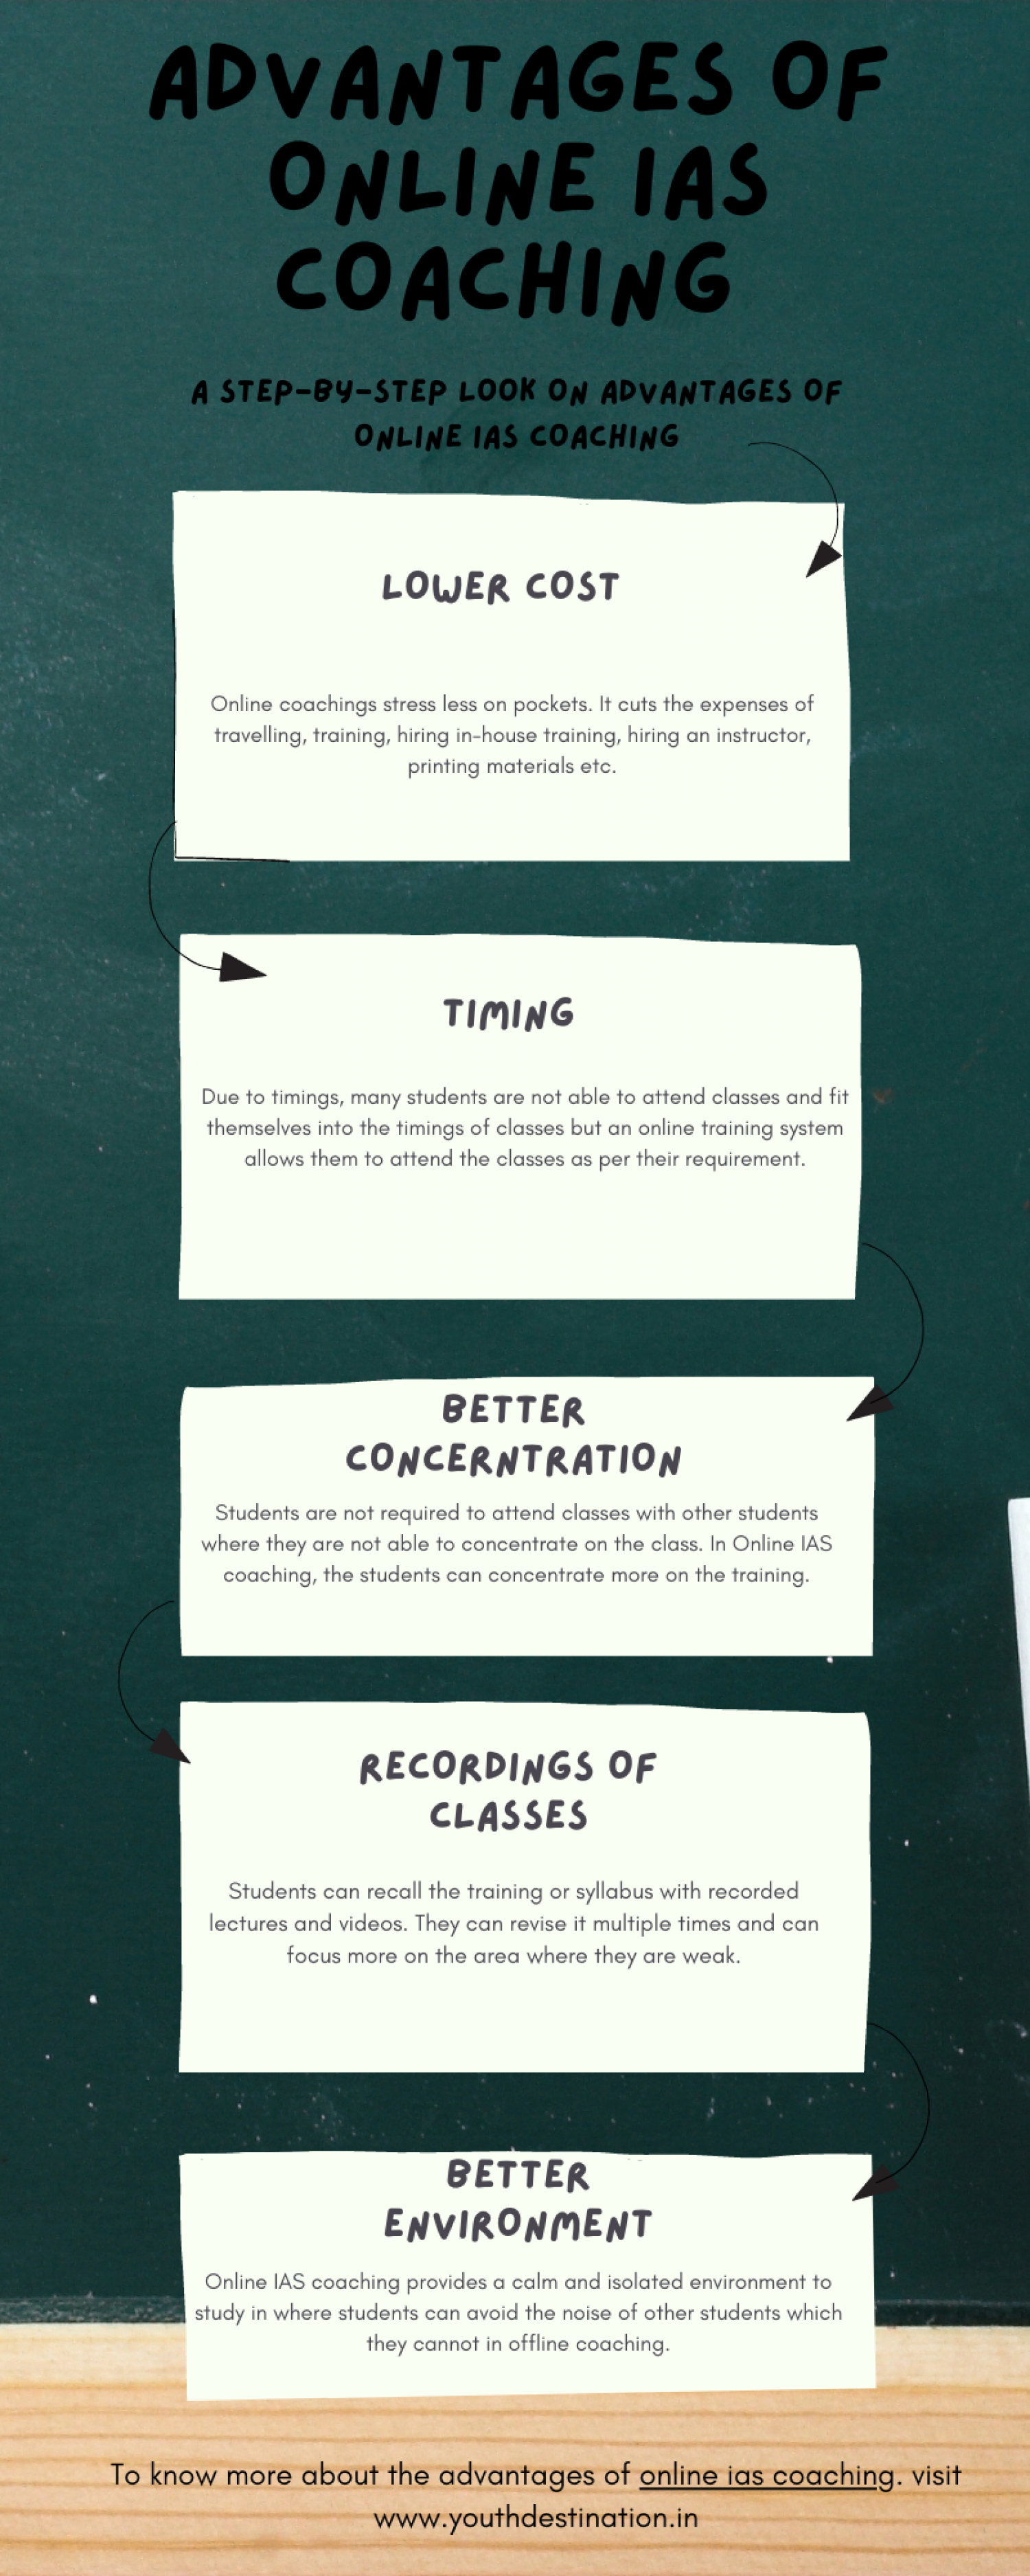 Advantages of online IAS coaching Infographic